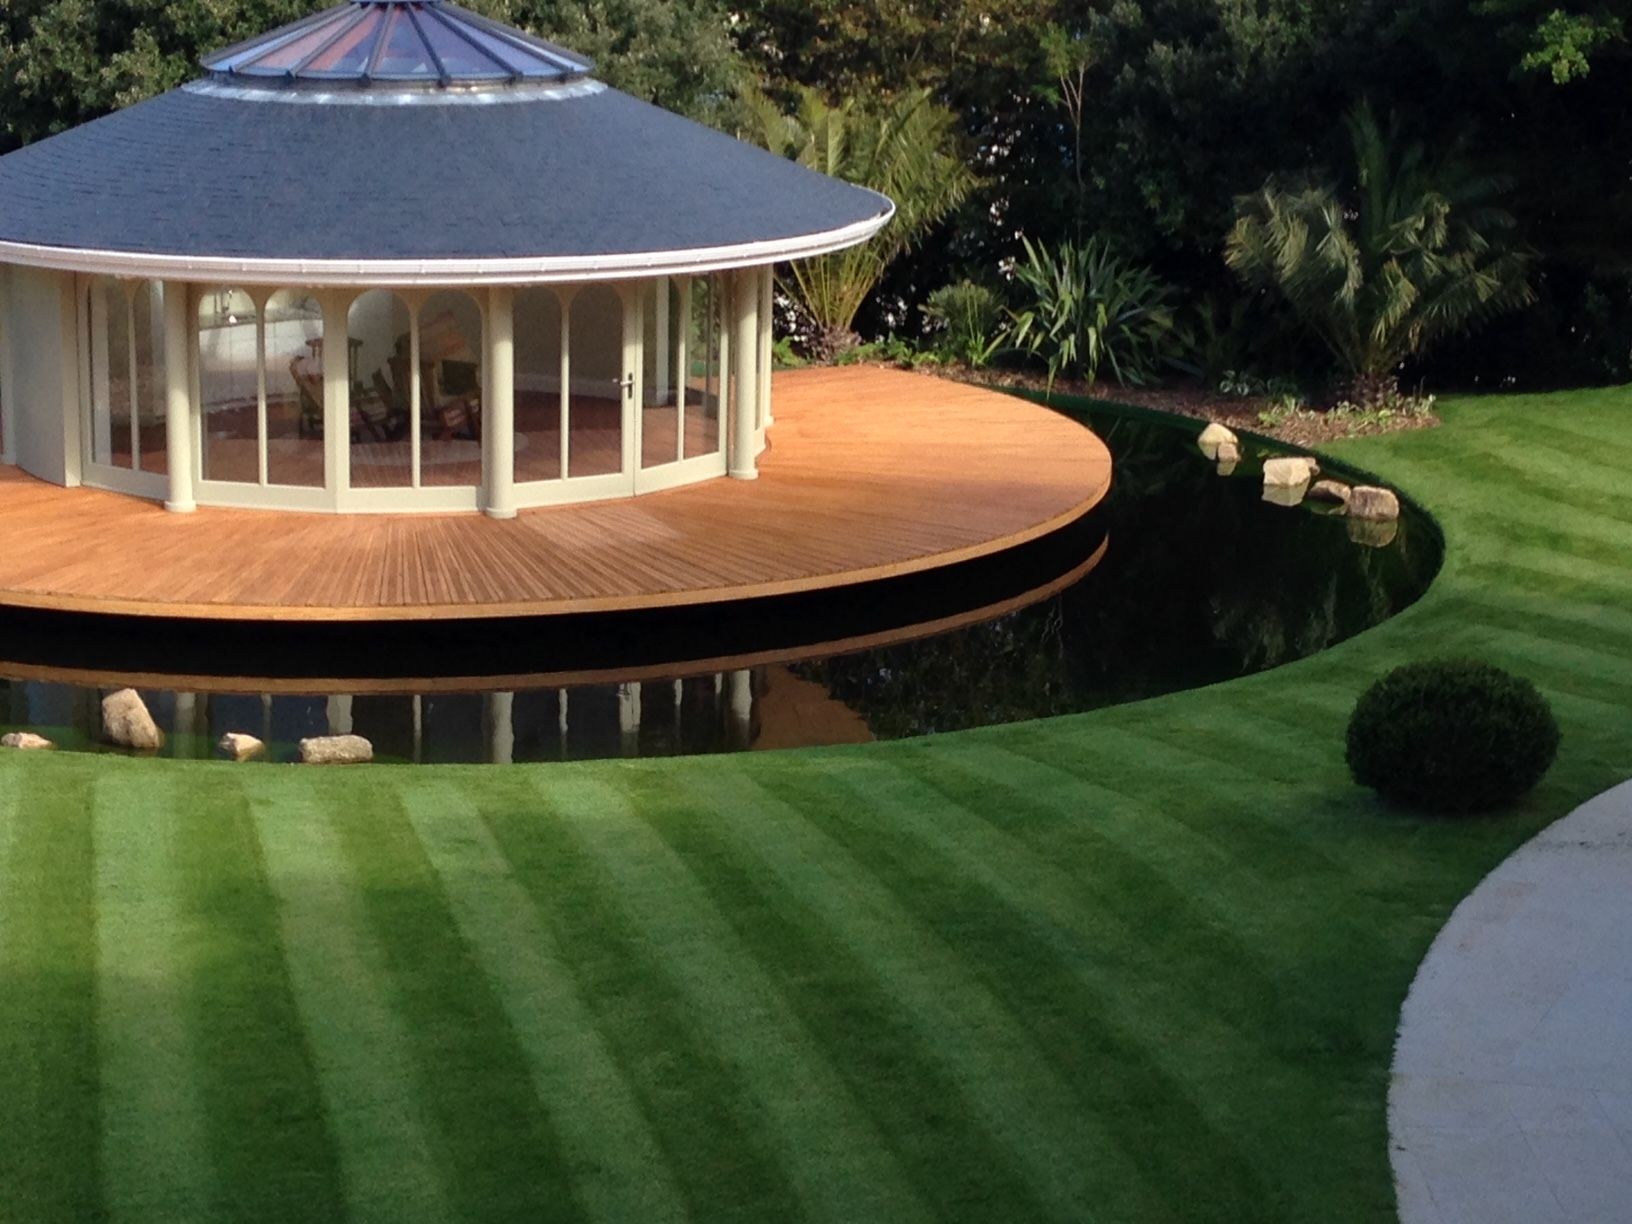 Co colour care guernsey - Garden Design In Guernsey Complete With A Circular Bandstand And Moat Everedge Steel Lawn Edging